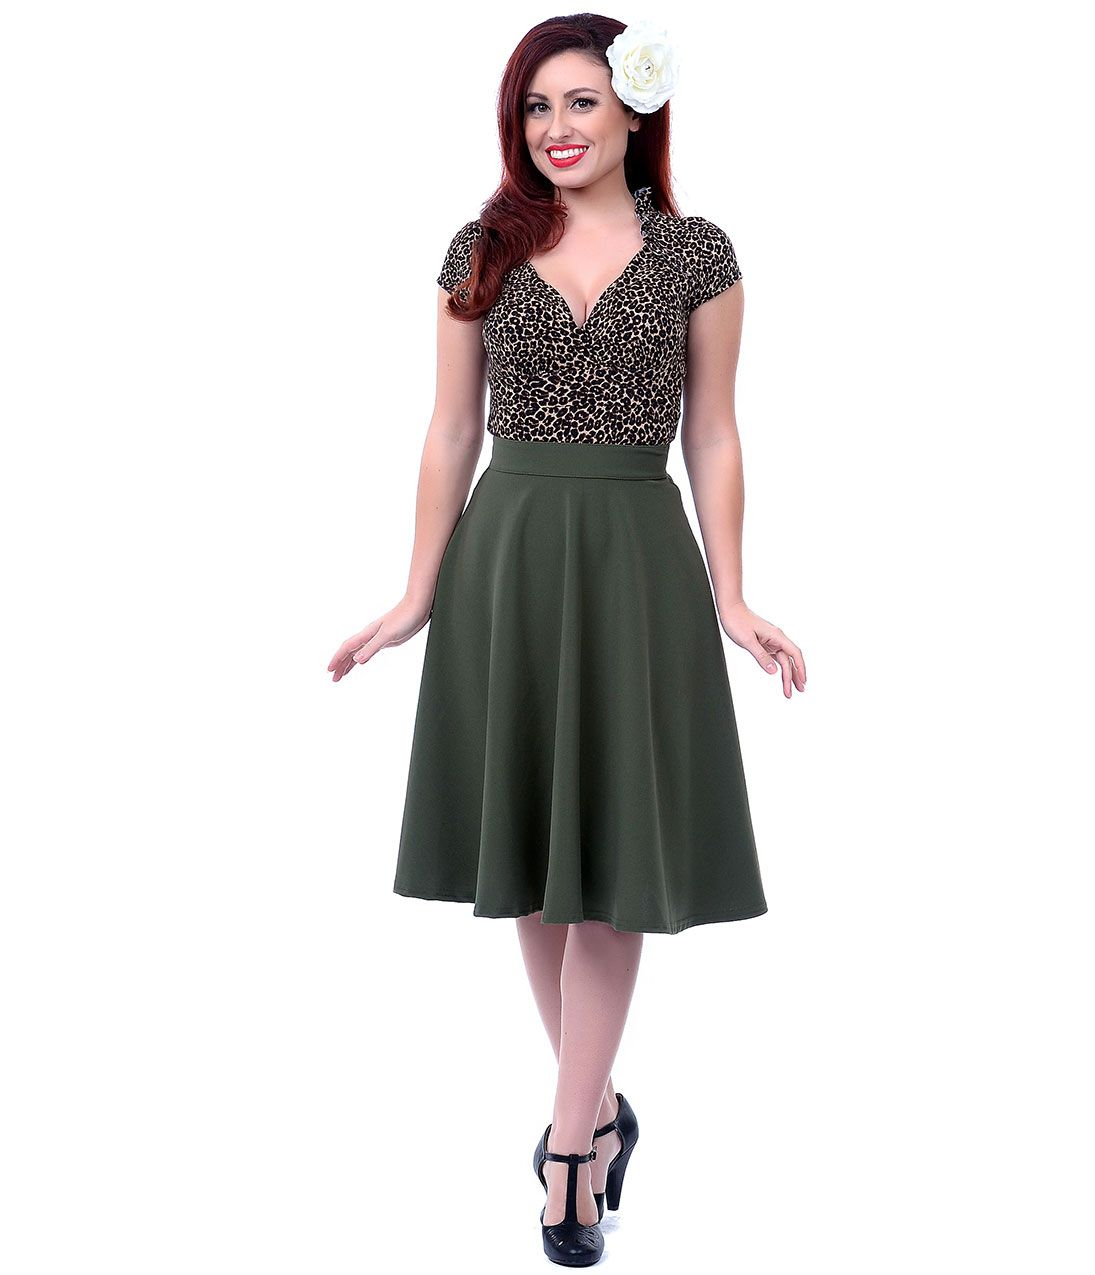 Olive high waist thrills swing skirt unique vintage prom dresses